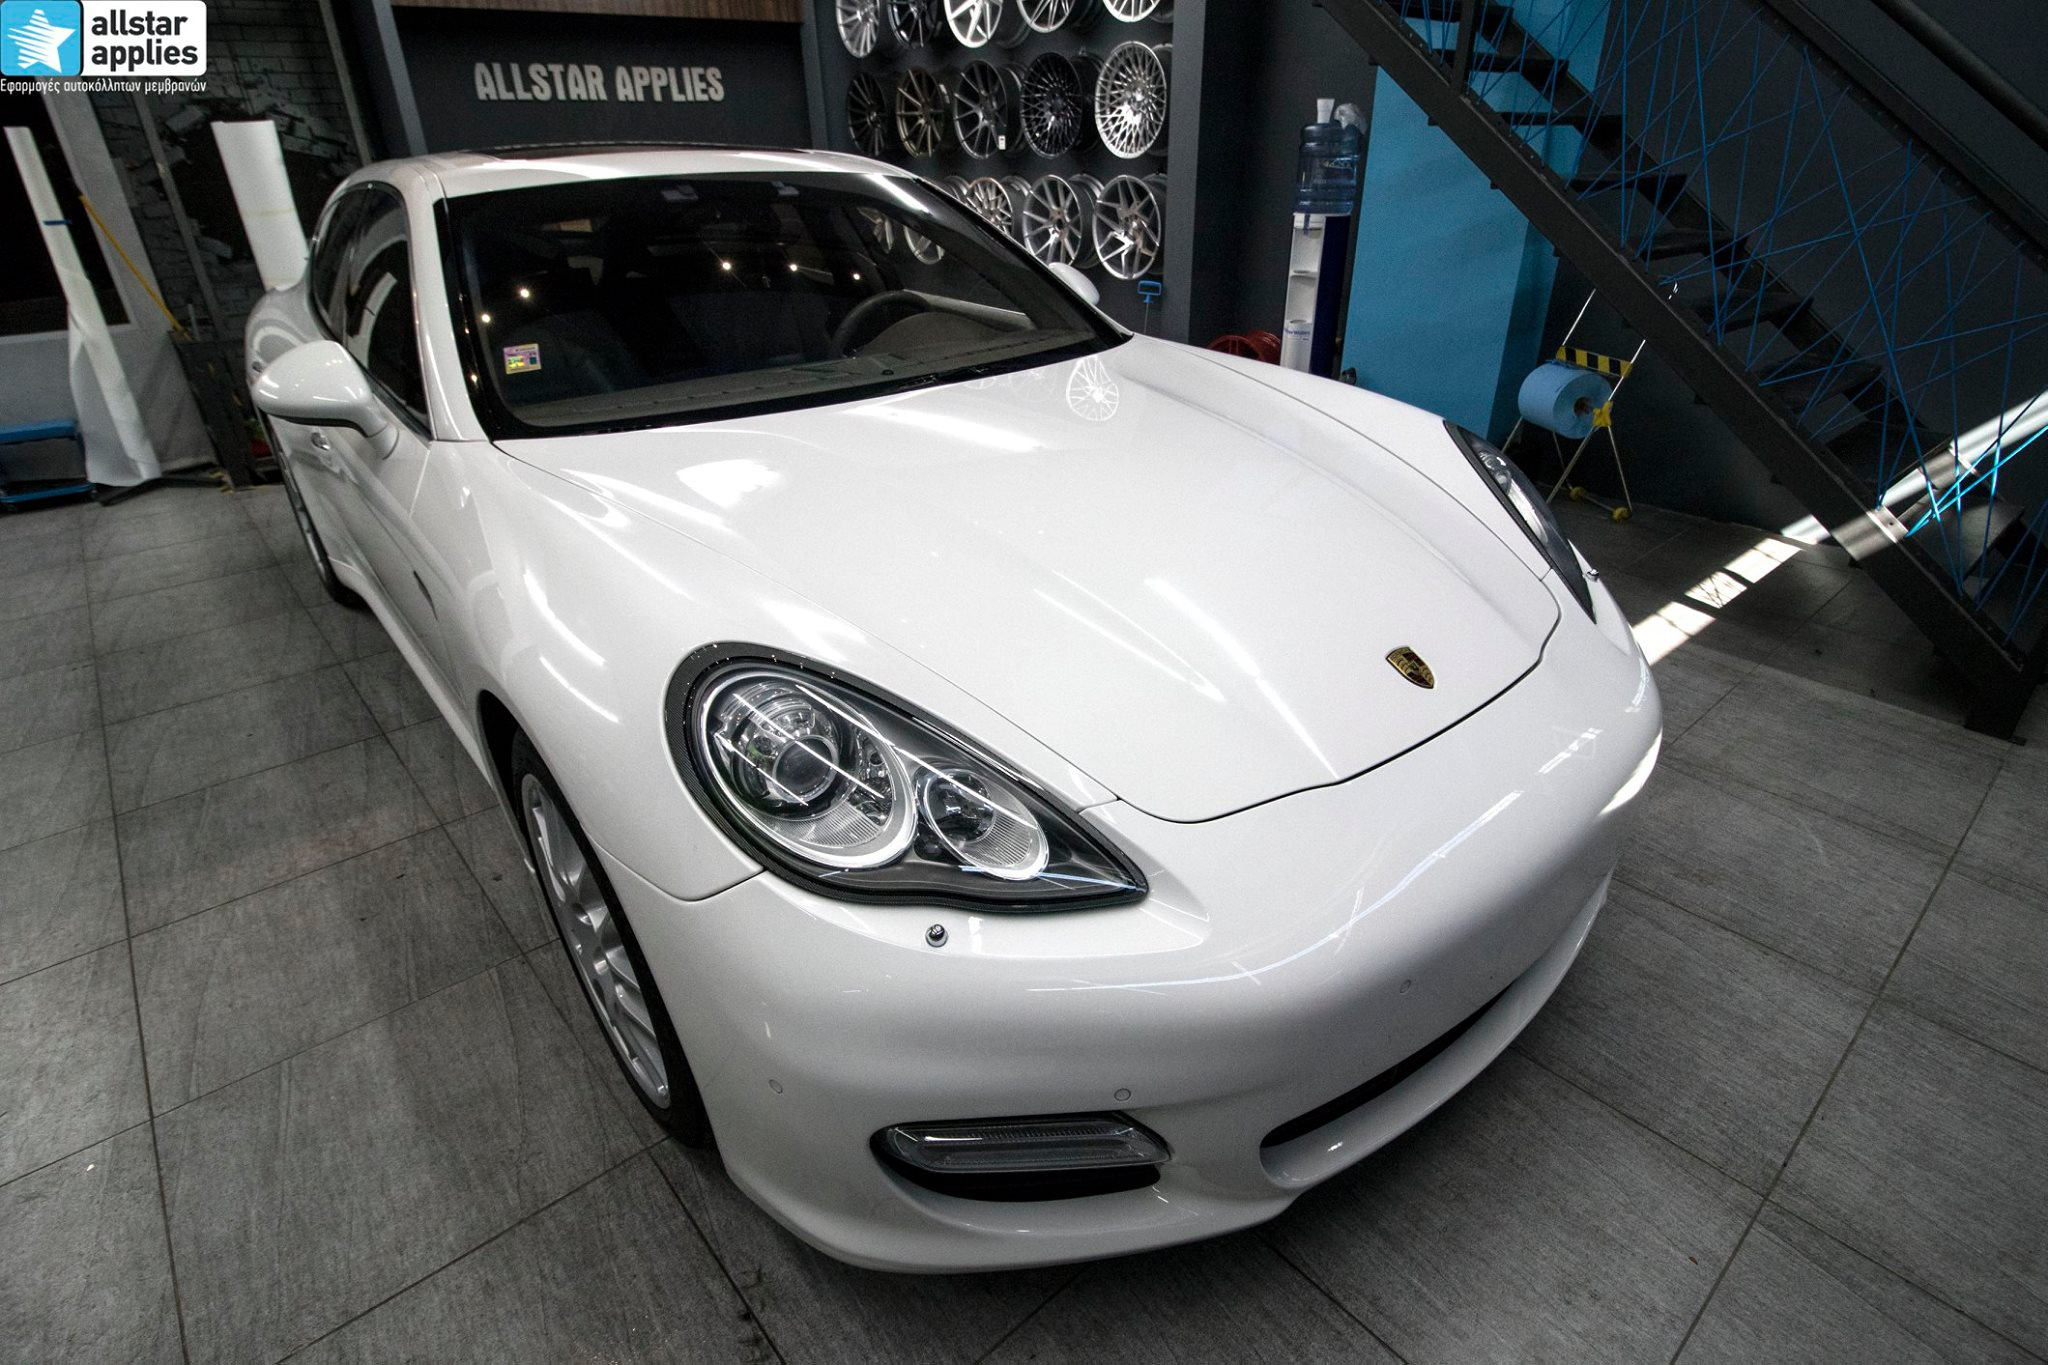 Porsche Panamera - Paint Protection Film (7)